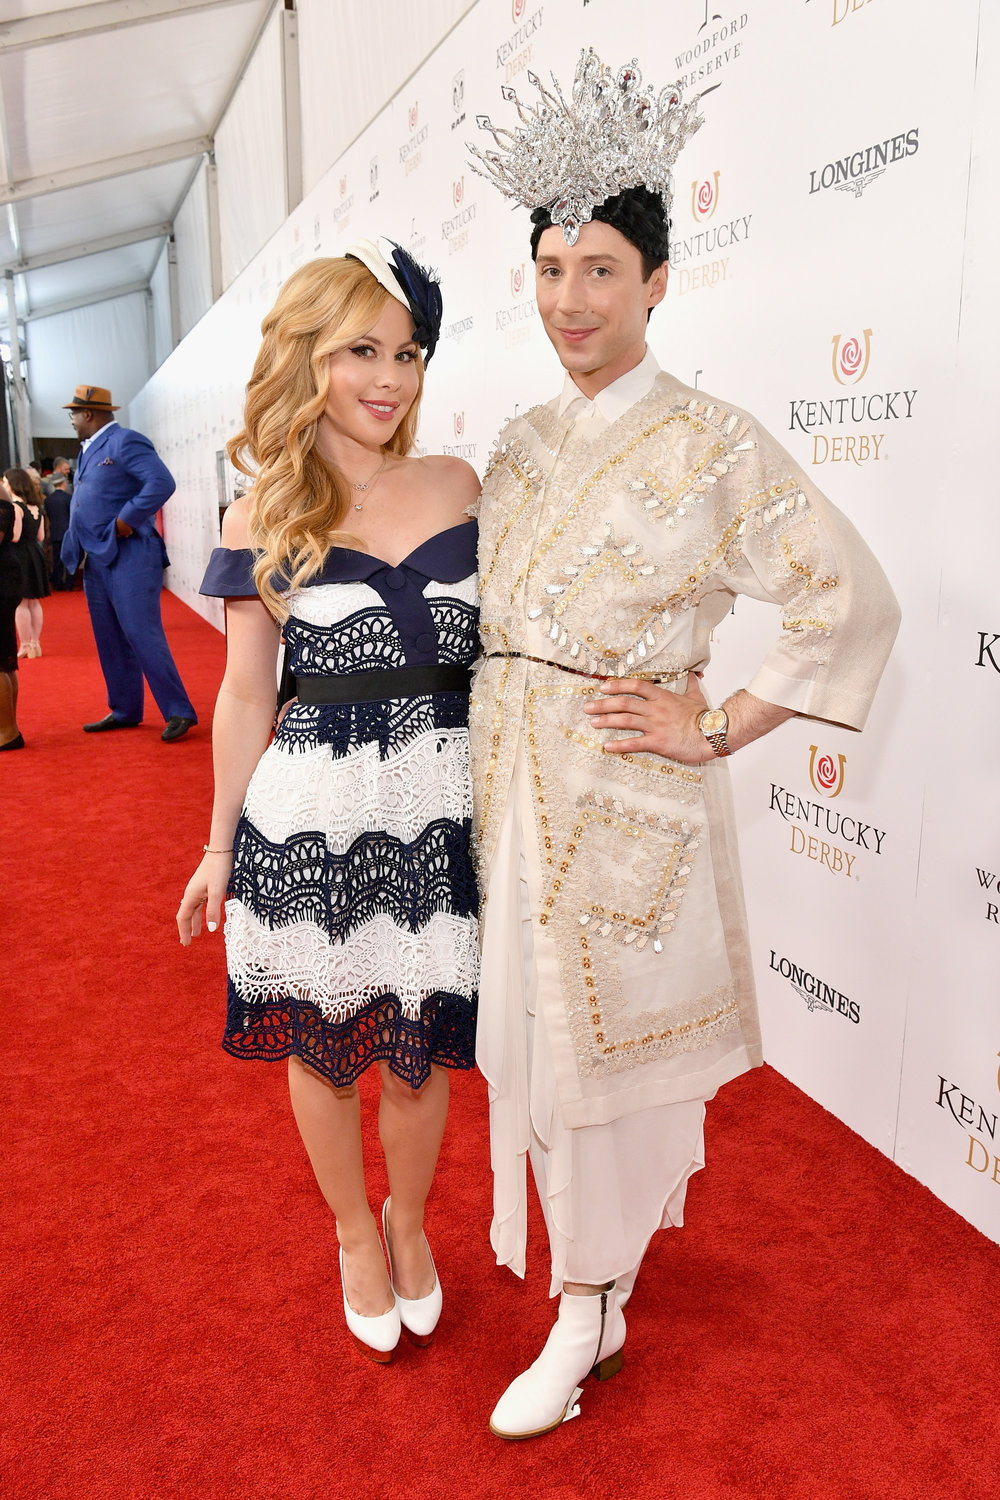 LOUISVILLE, KY - MAY 05:  American figure skaters Tara Lipinski and Johnny Weir attend Kentucky Derby 144 on May 5, 2018 in Louisville, Kentucky.  (Photo by Dia Dipasupil/Getty Images for Chruchill Downs) *** Local Caption *** Tara Lipinski;Johnny Weir